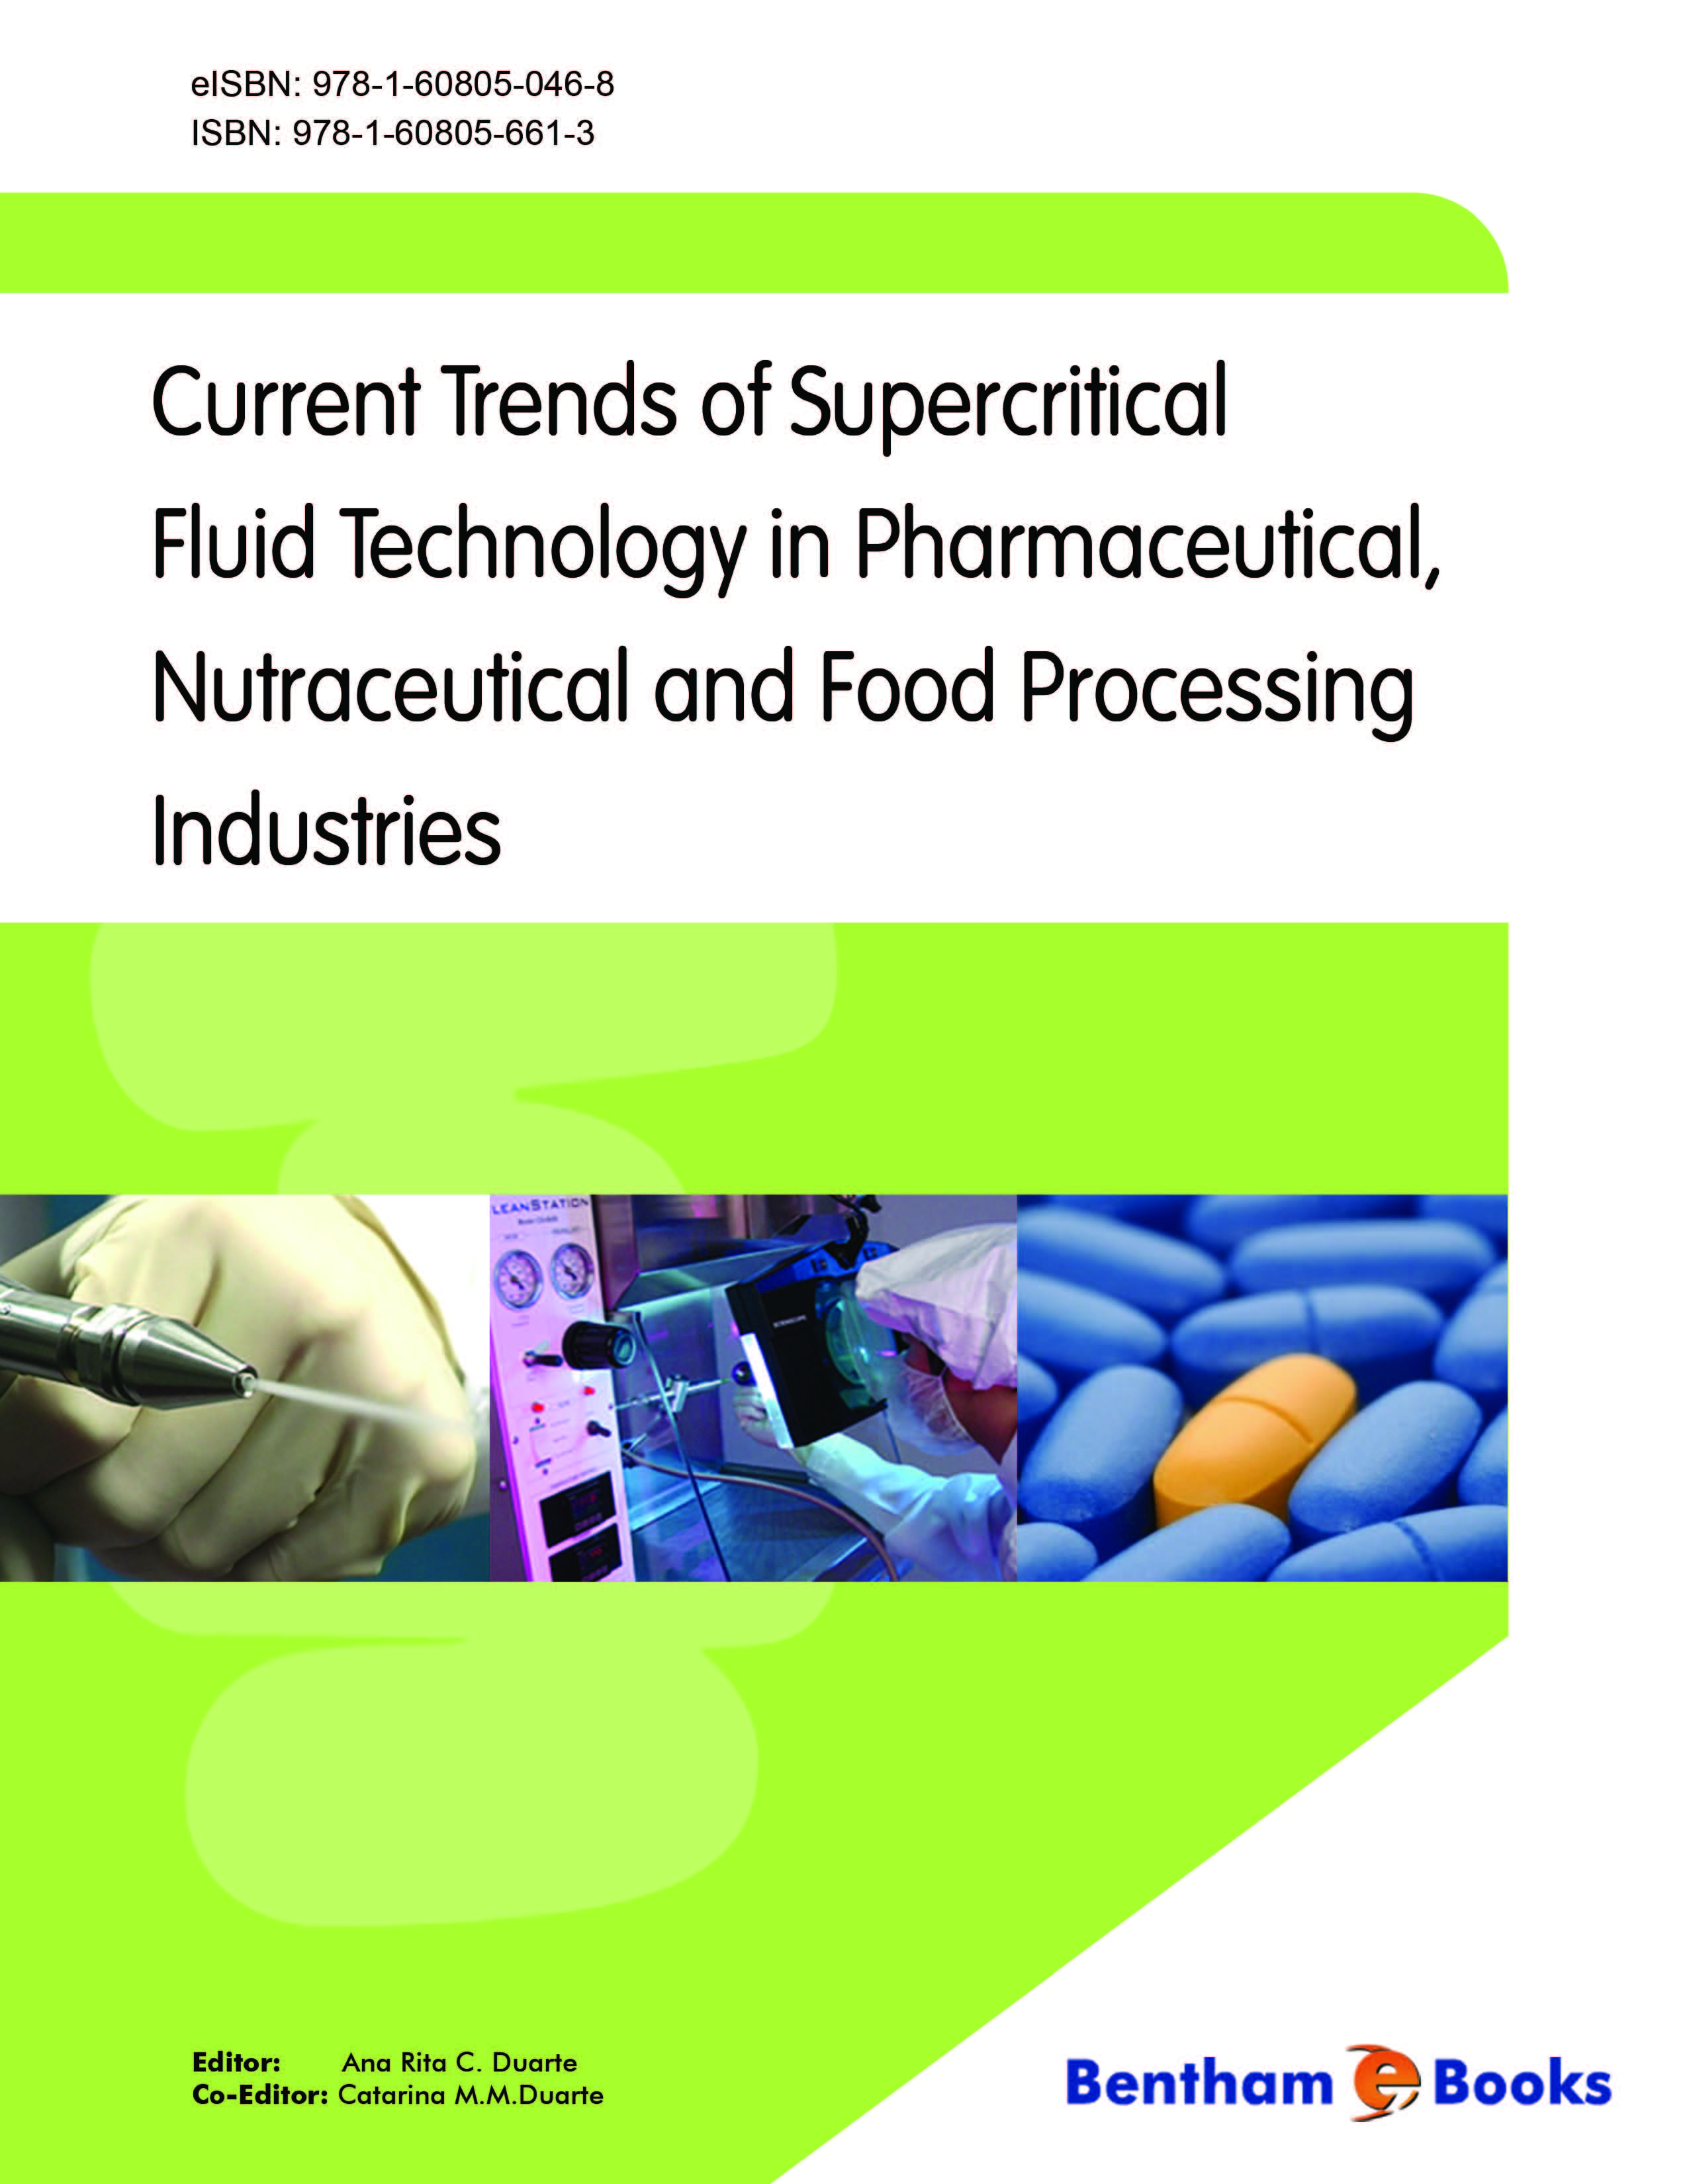 Current Trends of the Supercritical Fluid Technology in the Pharmaceutical, Nutraceutical and Food Processing Industries